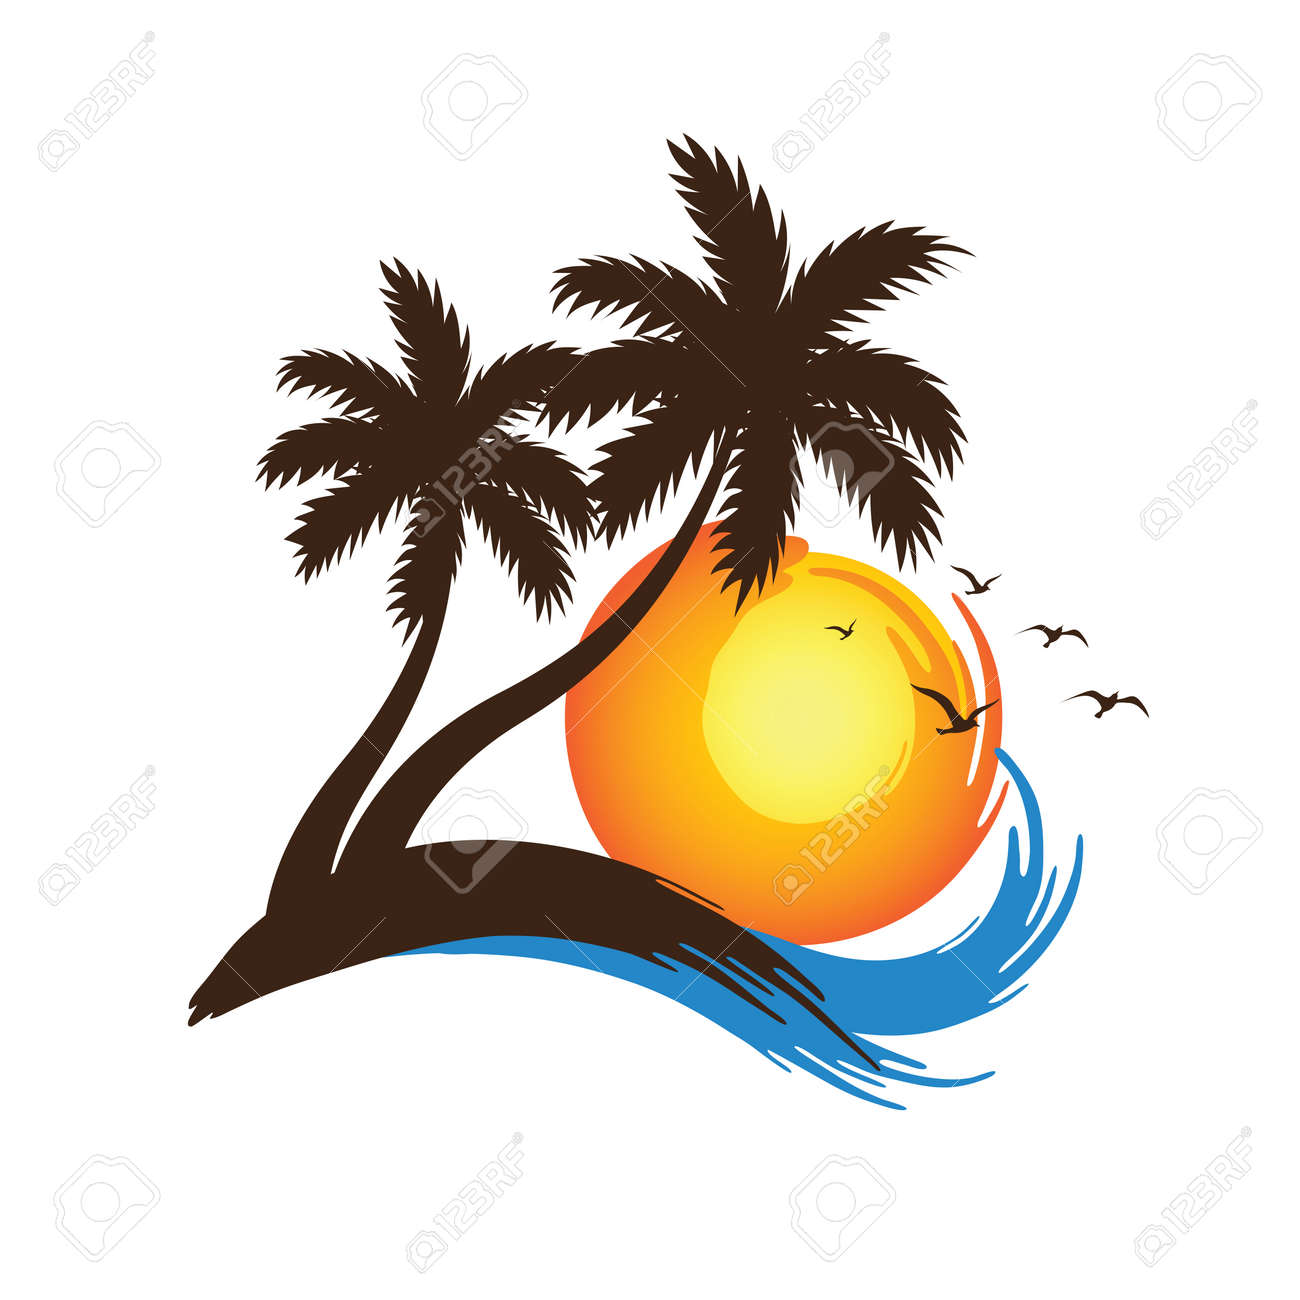 Tropical palm trees silhouettes with Sunset ,vector illustration - 53007452